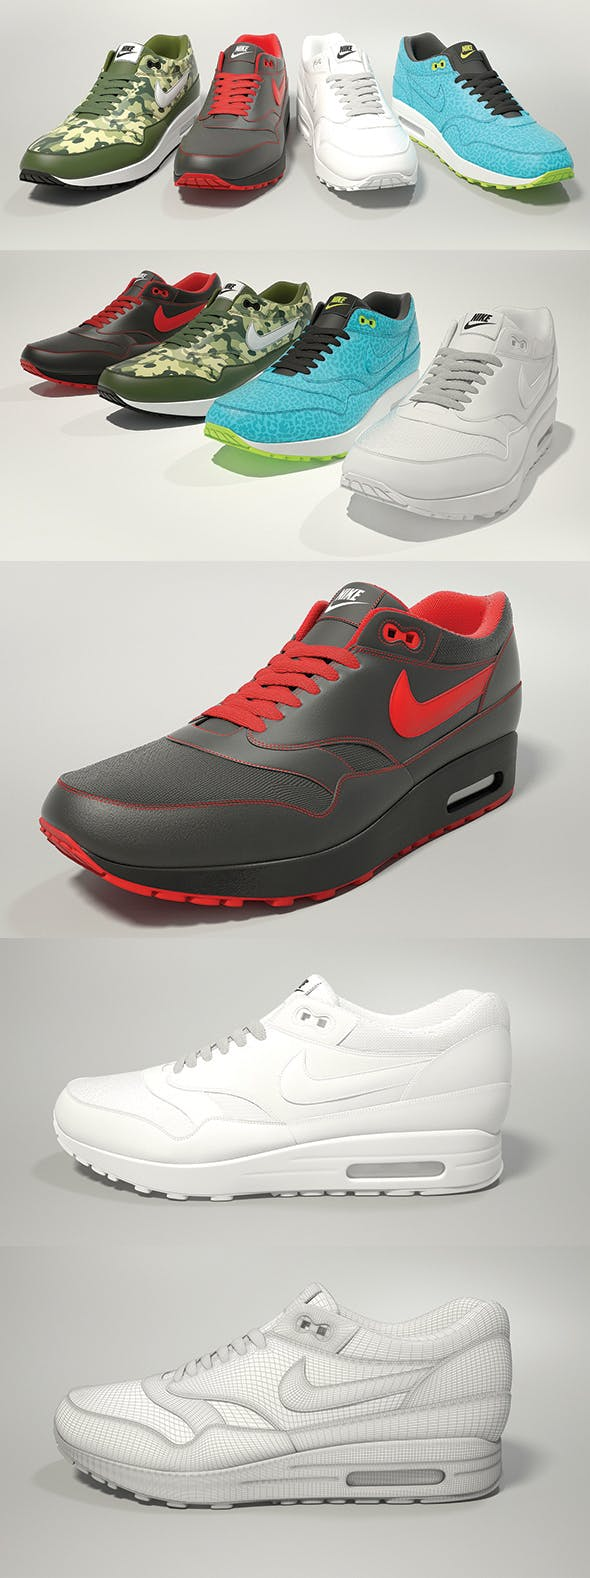 Nike Air Max 1 3D model - 3DOcean Item for Sale